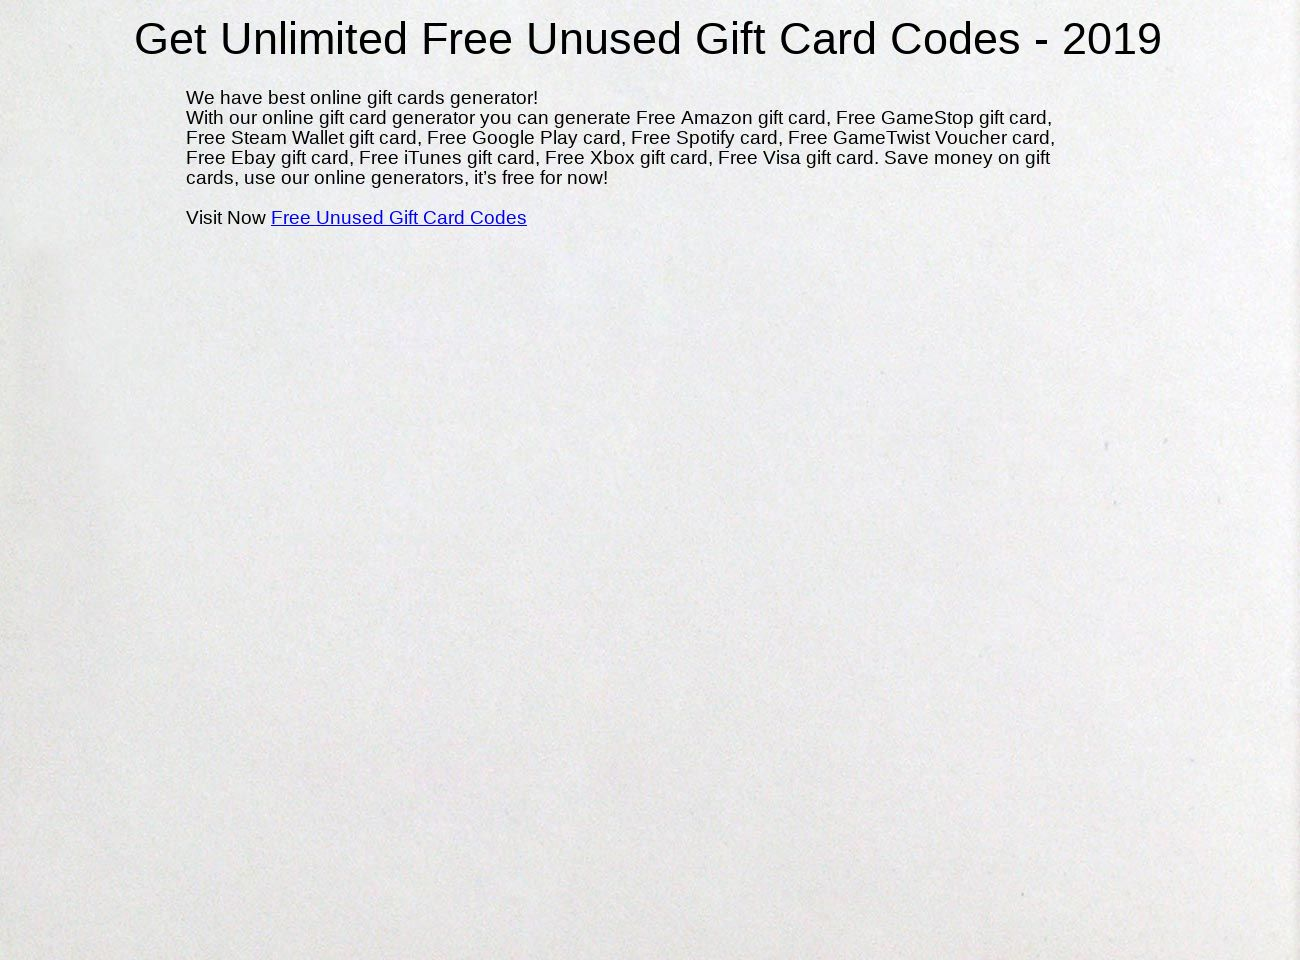 Unusedcodegenerator - Free Gift Card Codes: text, images, music